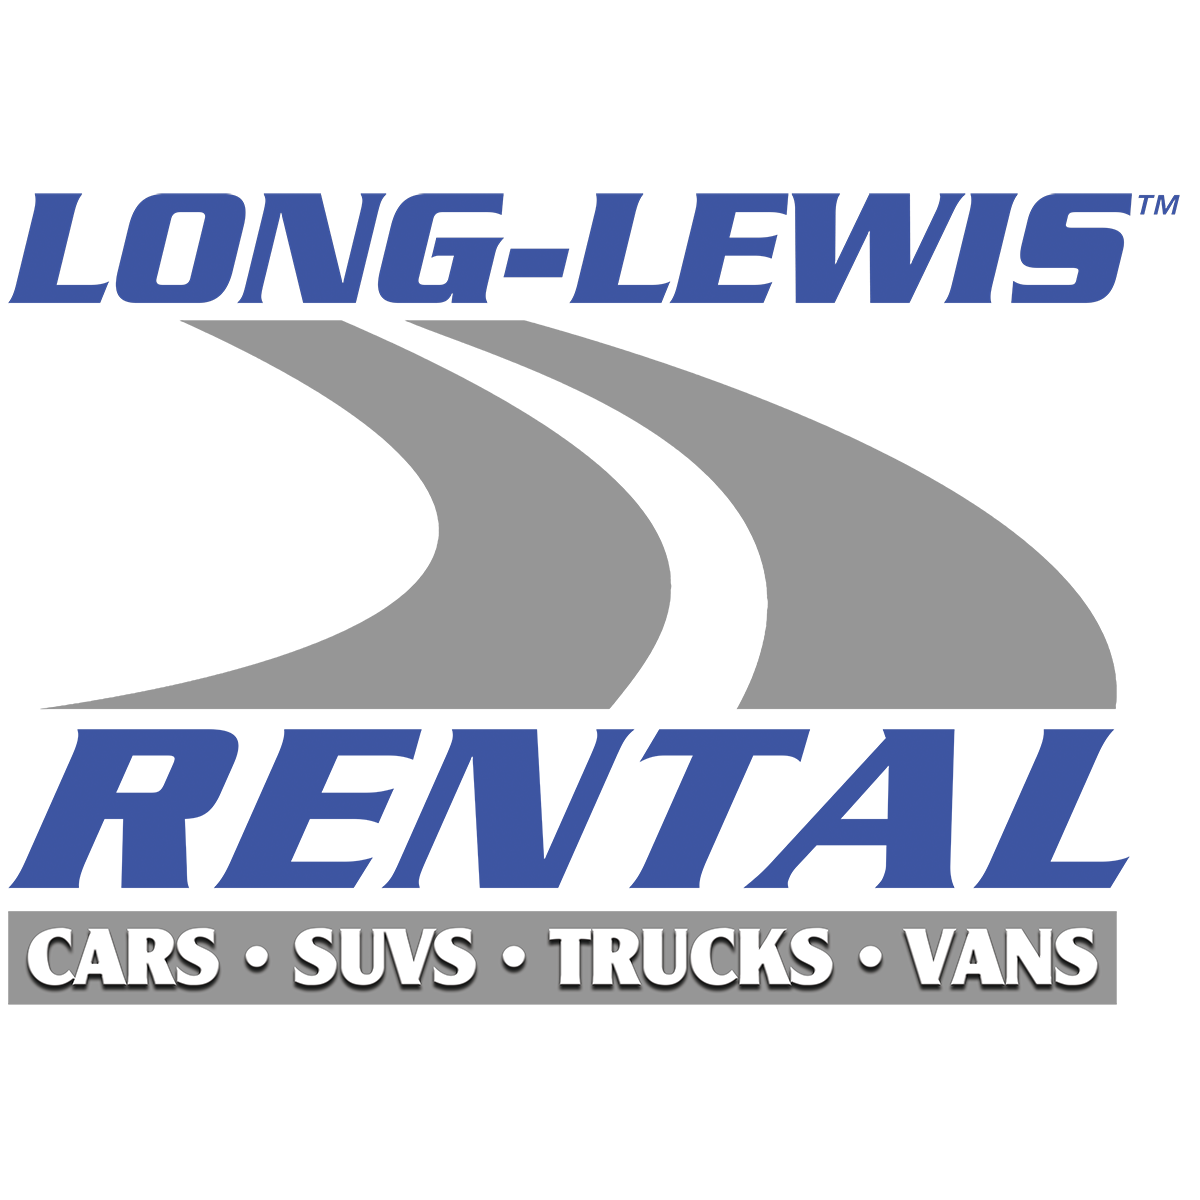 Long-Lewis Rentals of Hoover